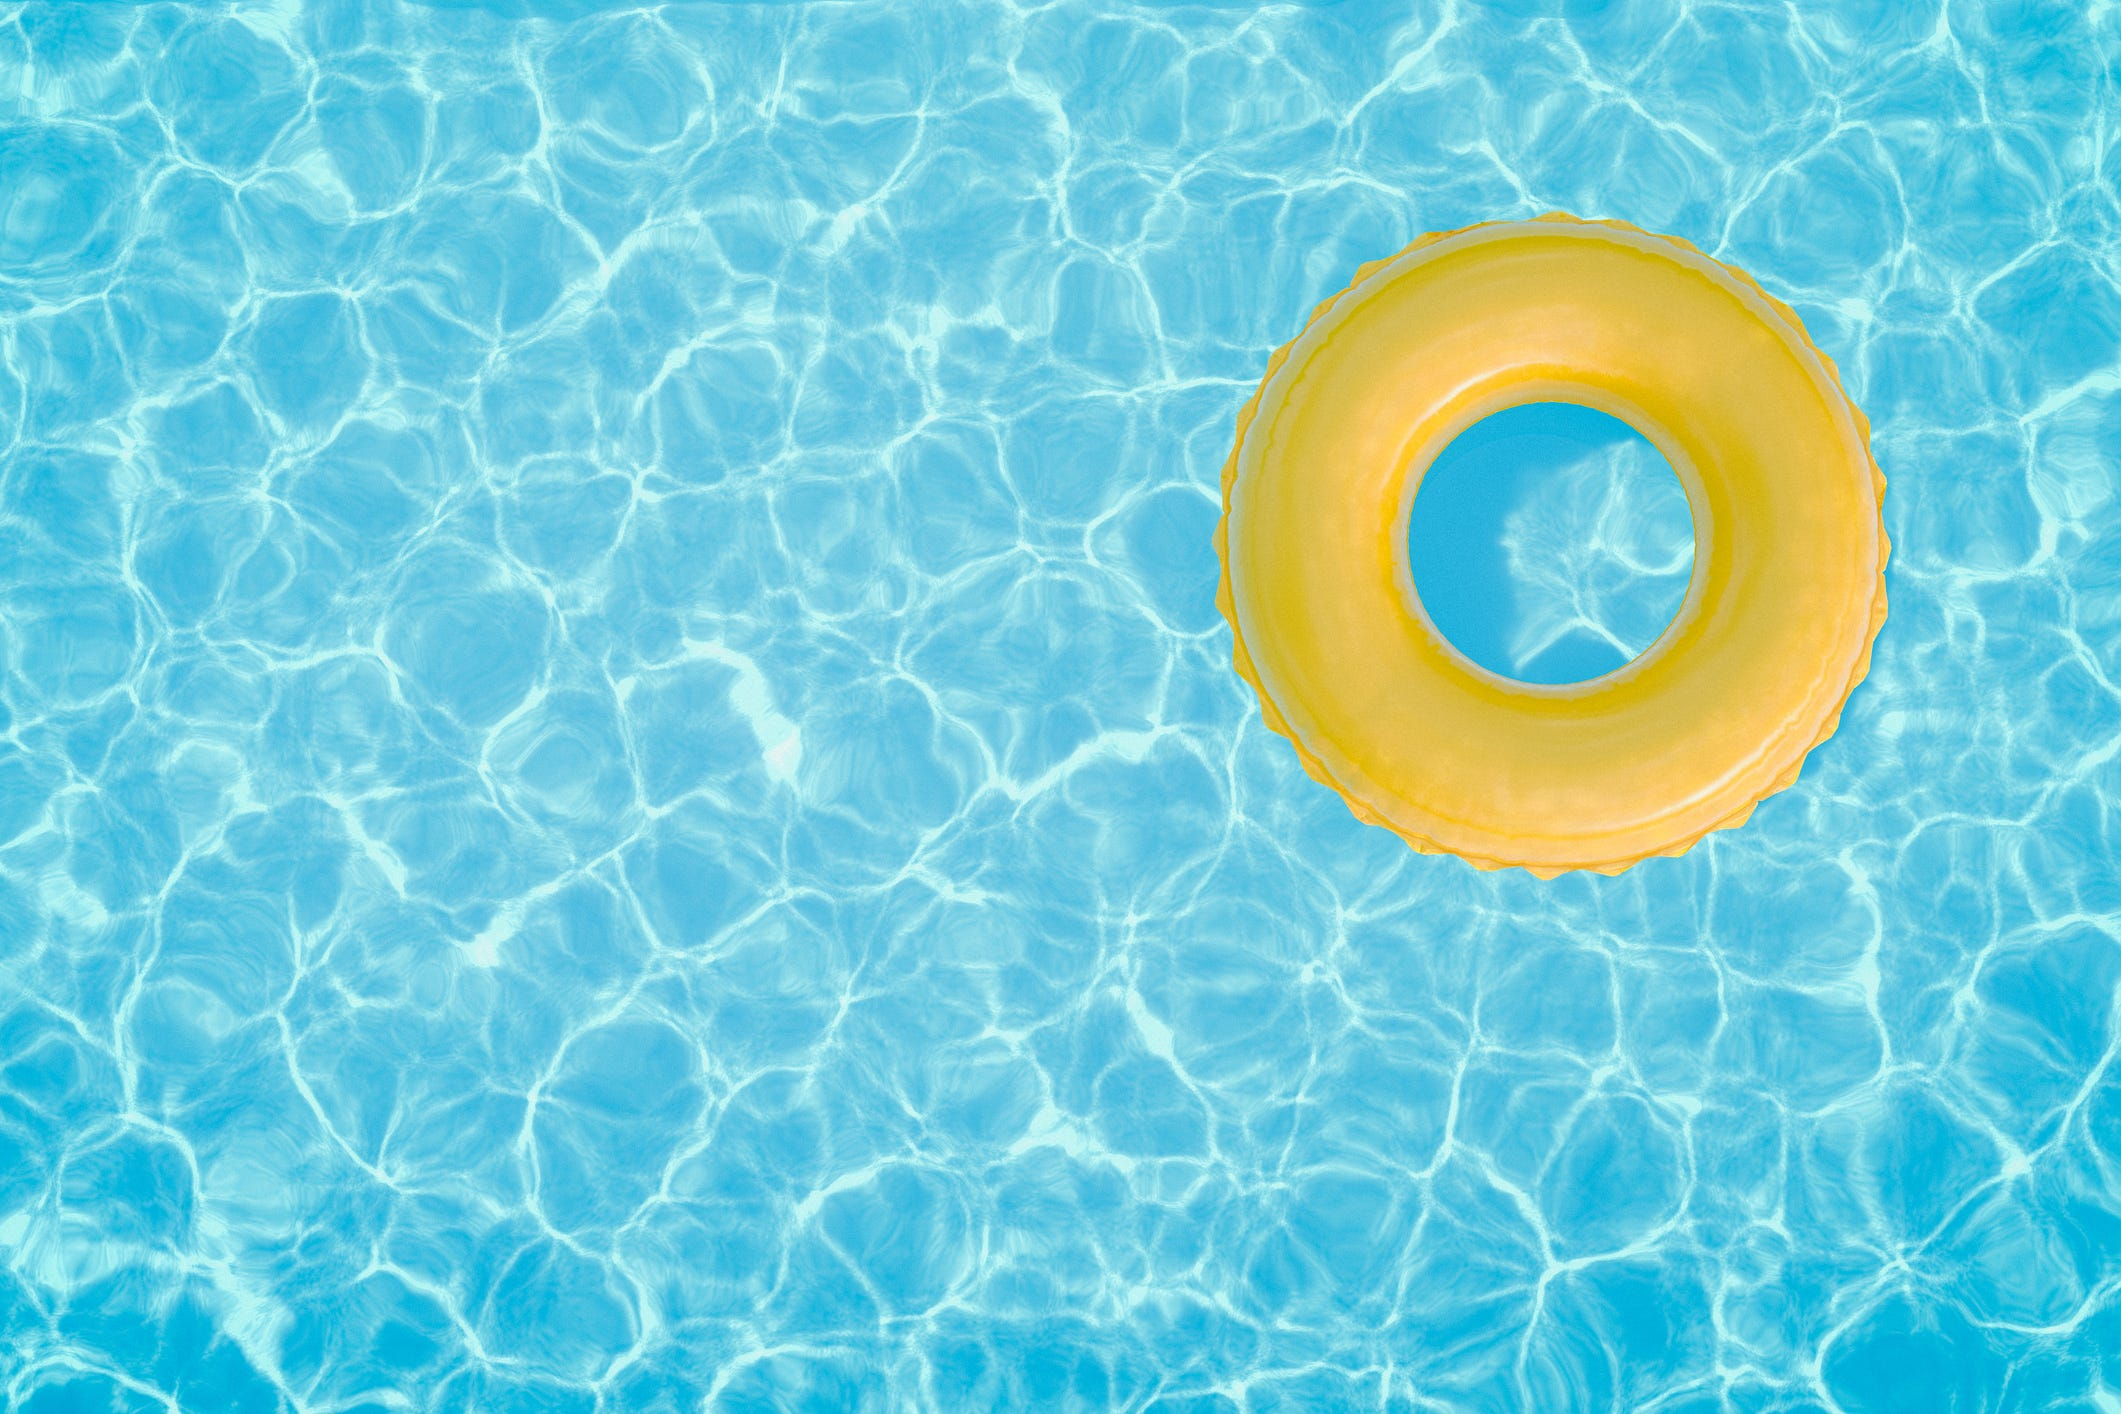 An Image Of A Pool Float In A Swimming Pool.